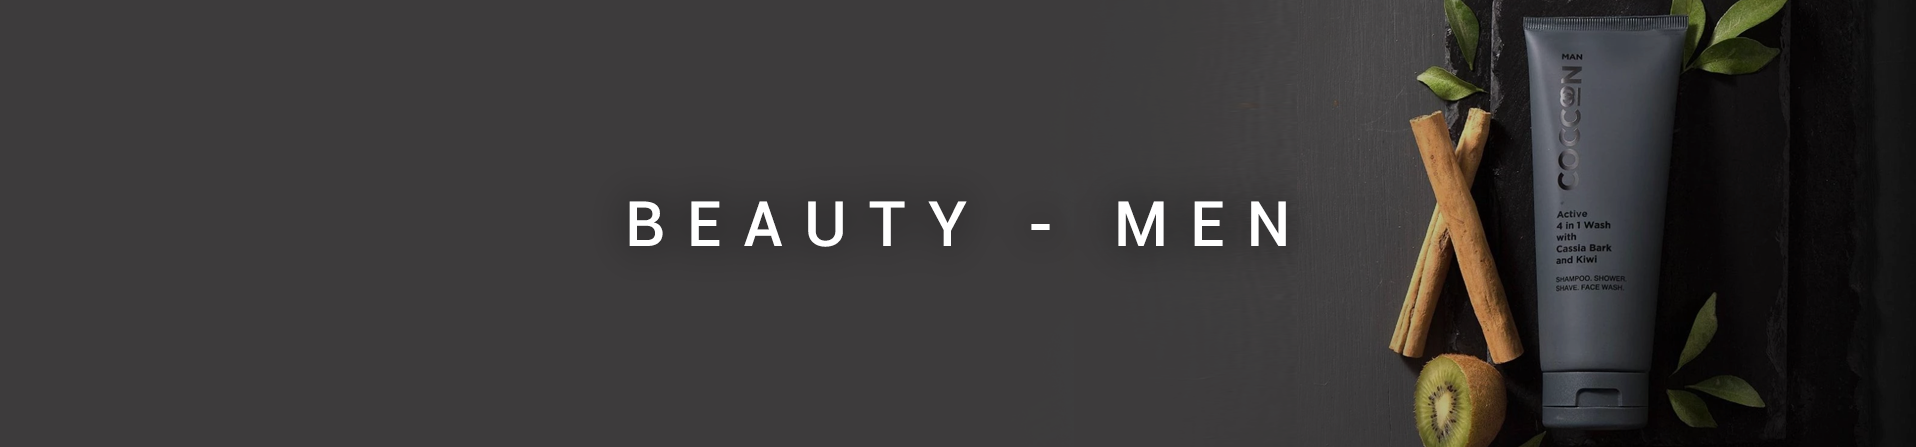 - Beauty - Men -